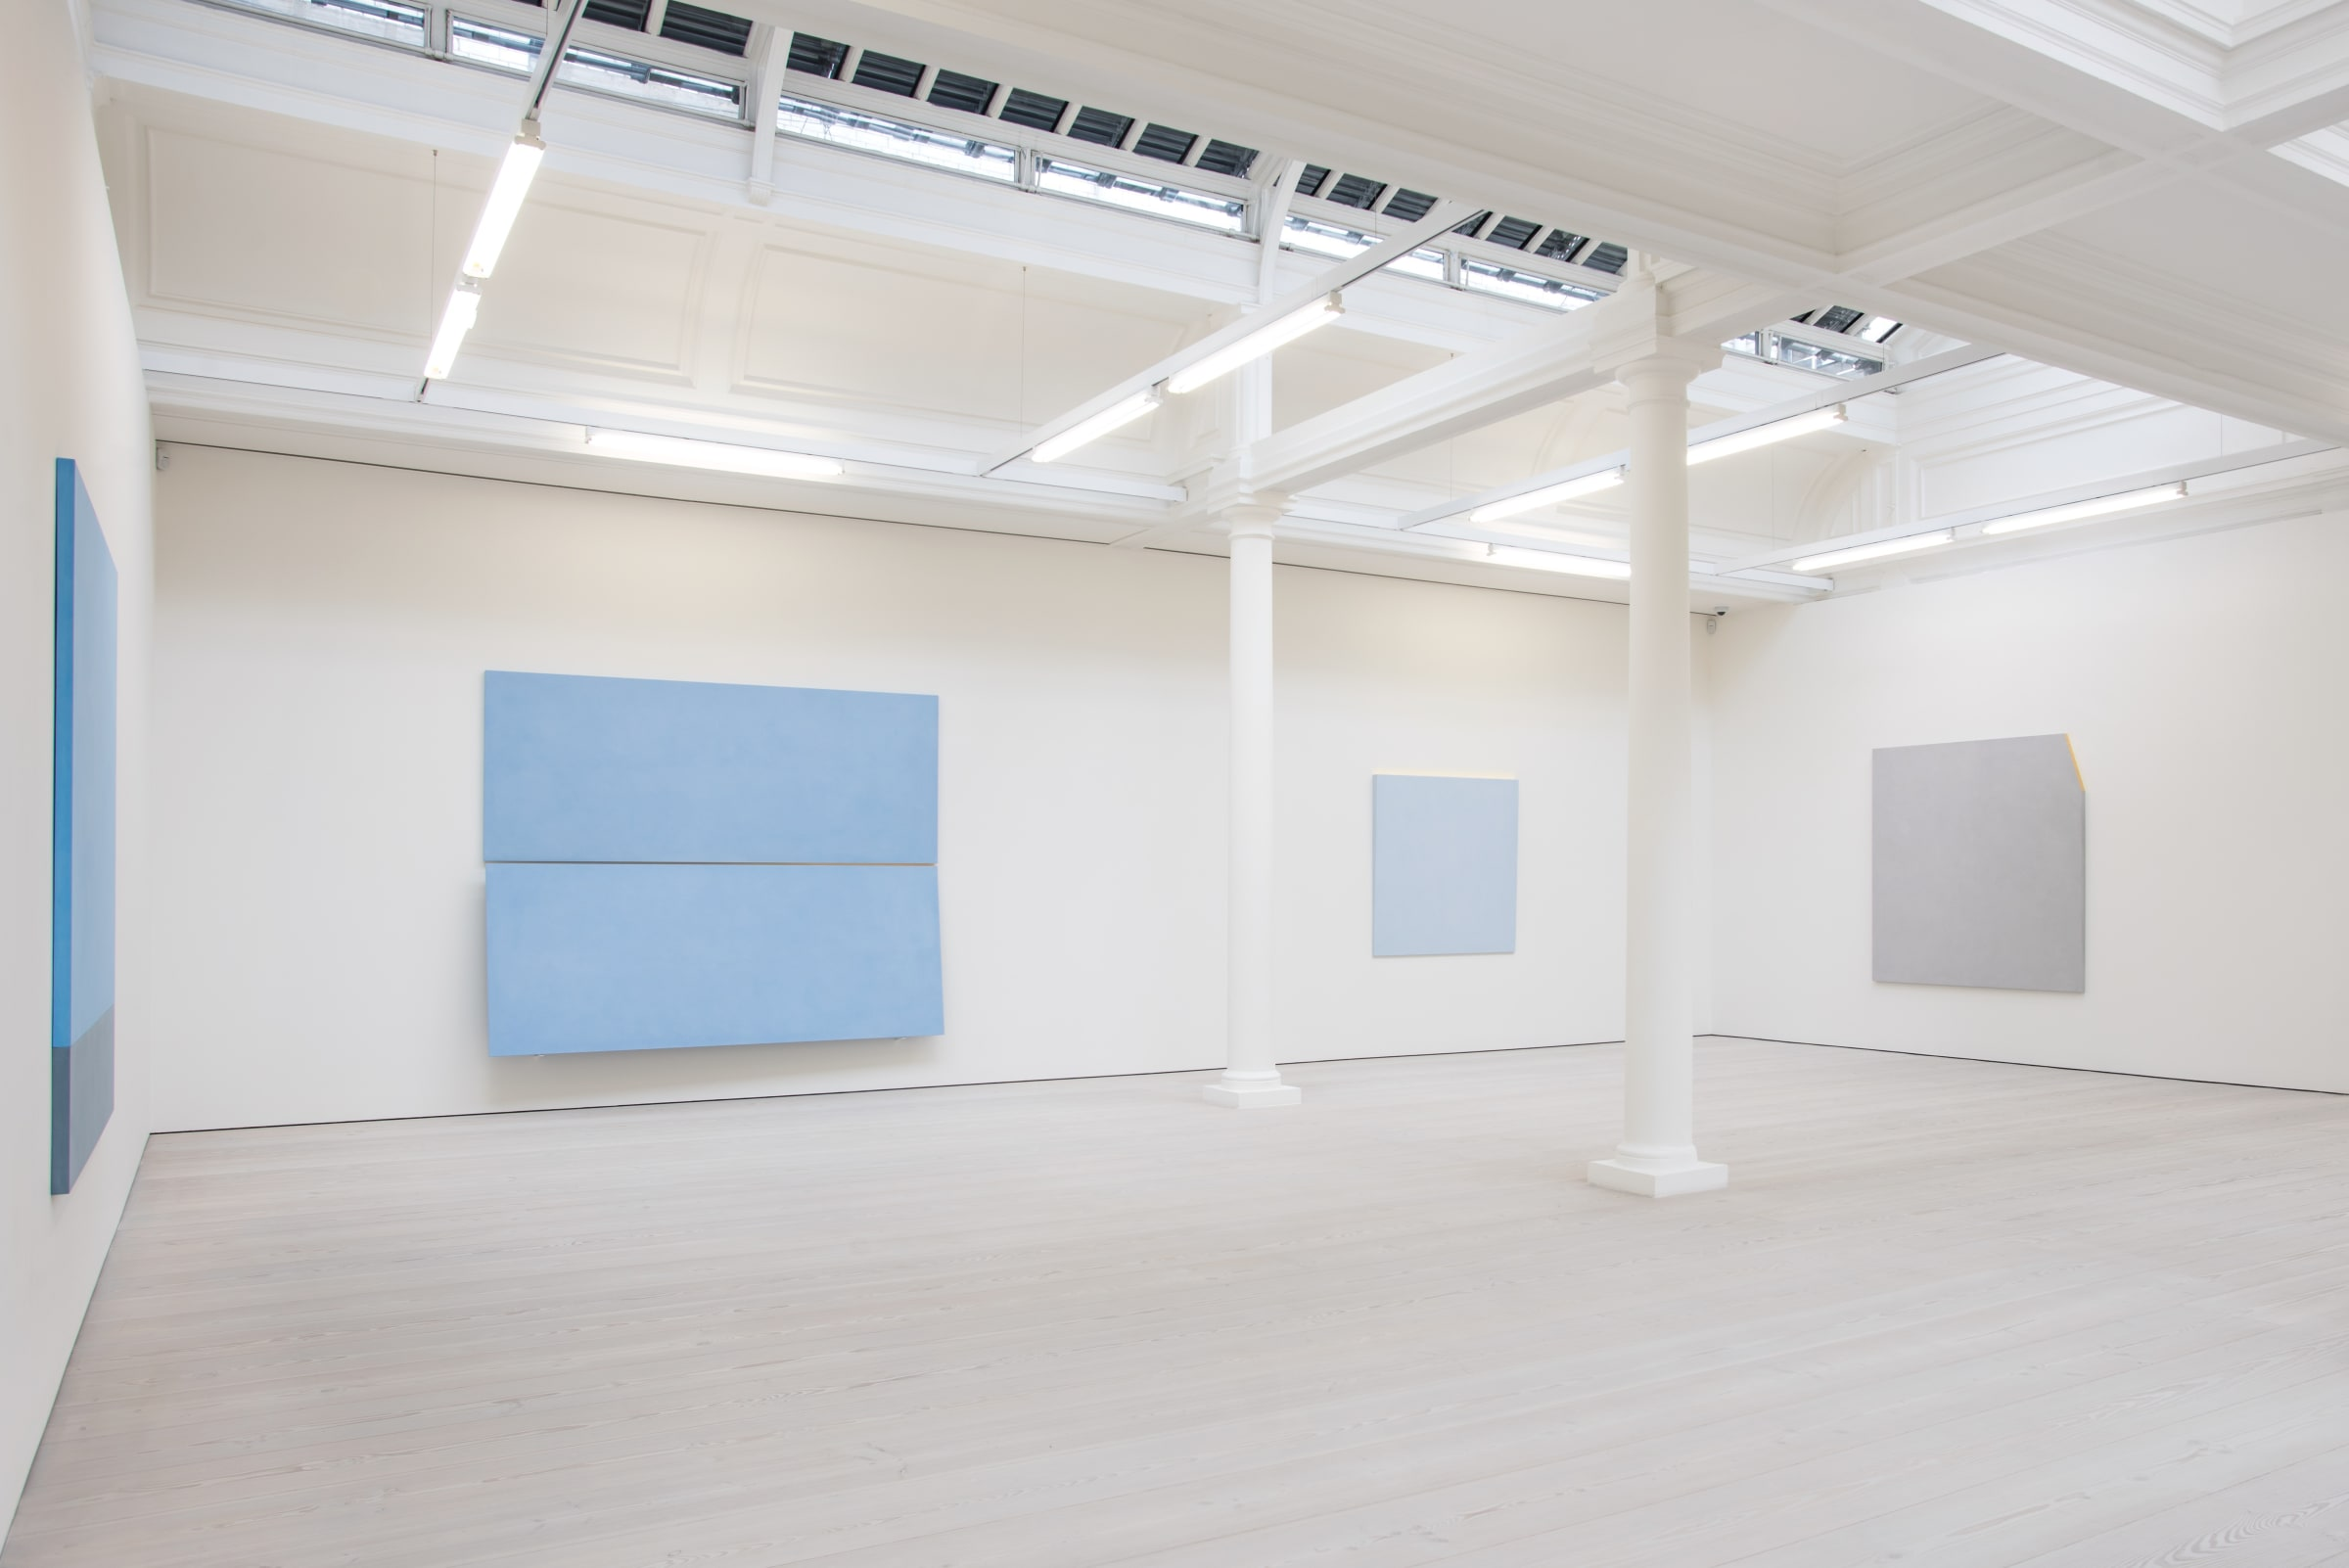 4 blue and gray paintings hang in a large white room. There is a long skylight in the ceiling and 2 white columns.